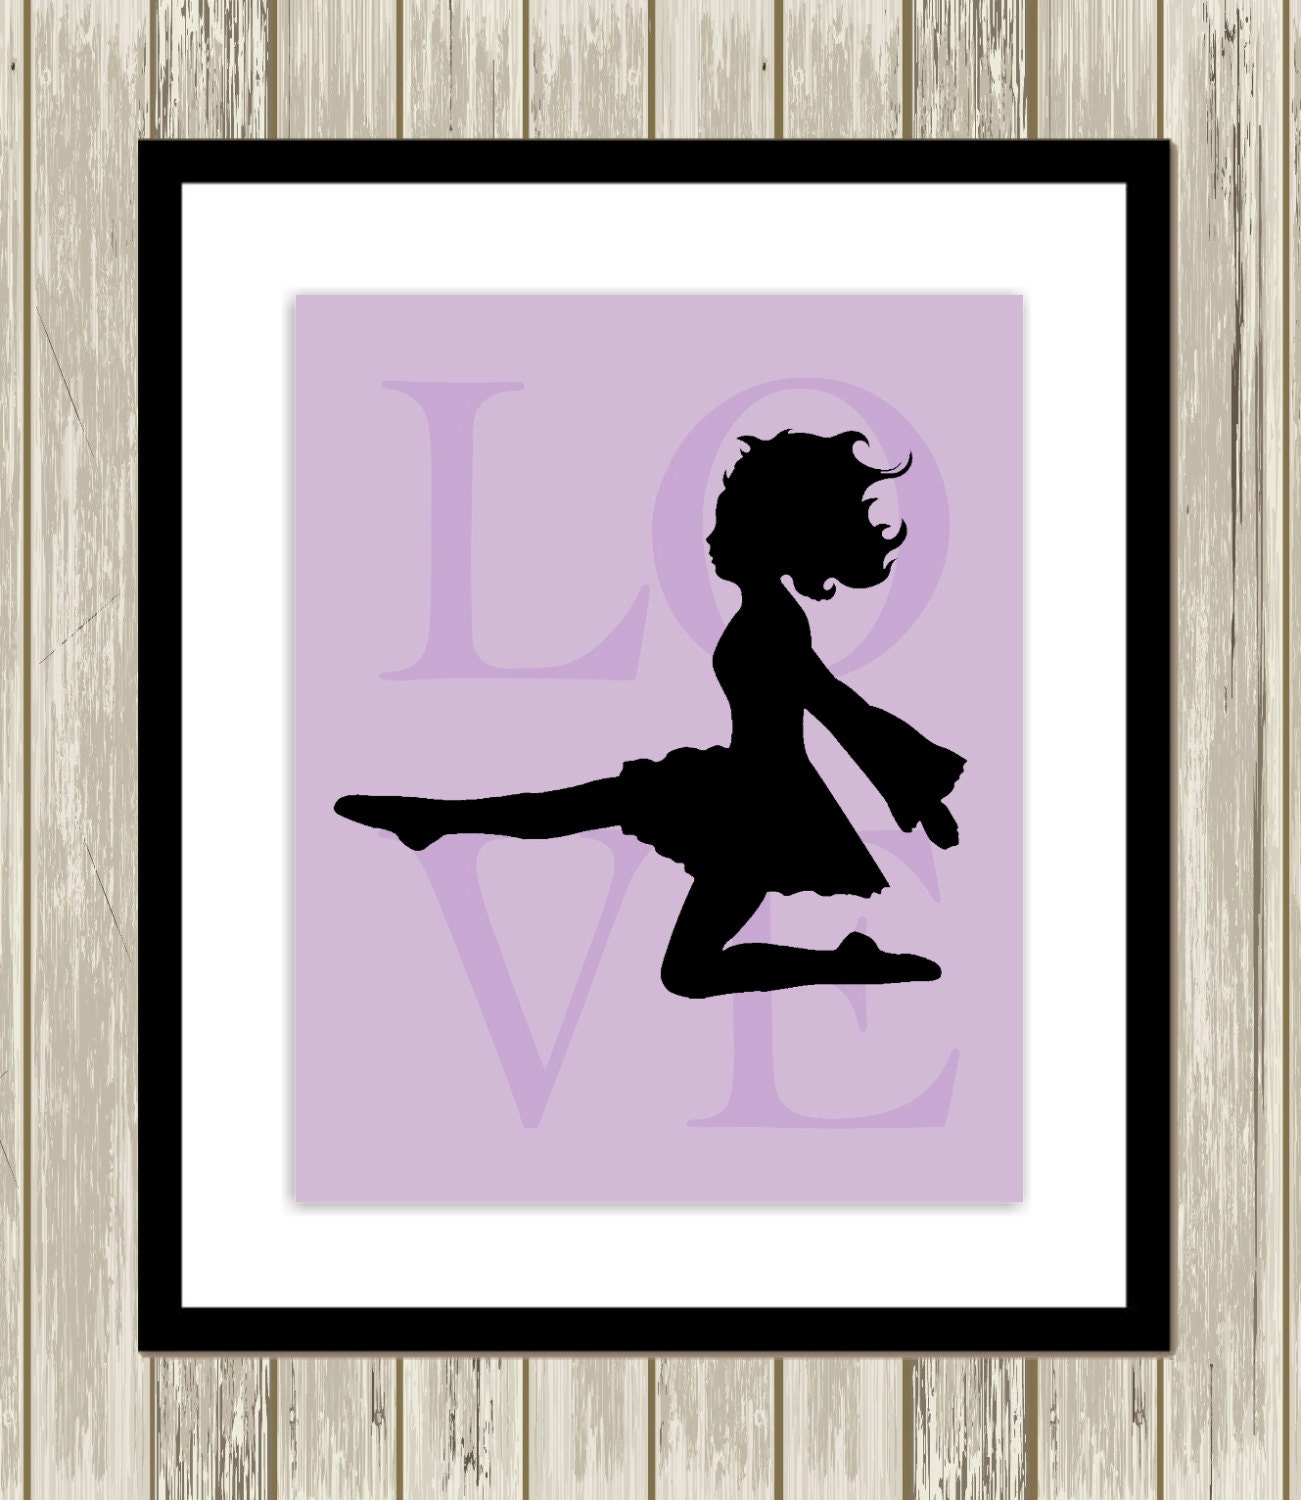 Irish dance wall art little girls room decor nursery art for Girls room wall decor